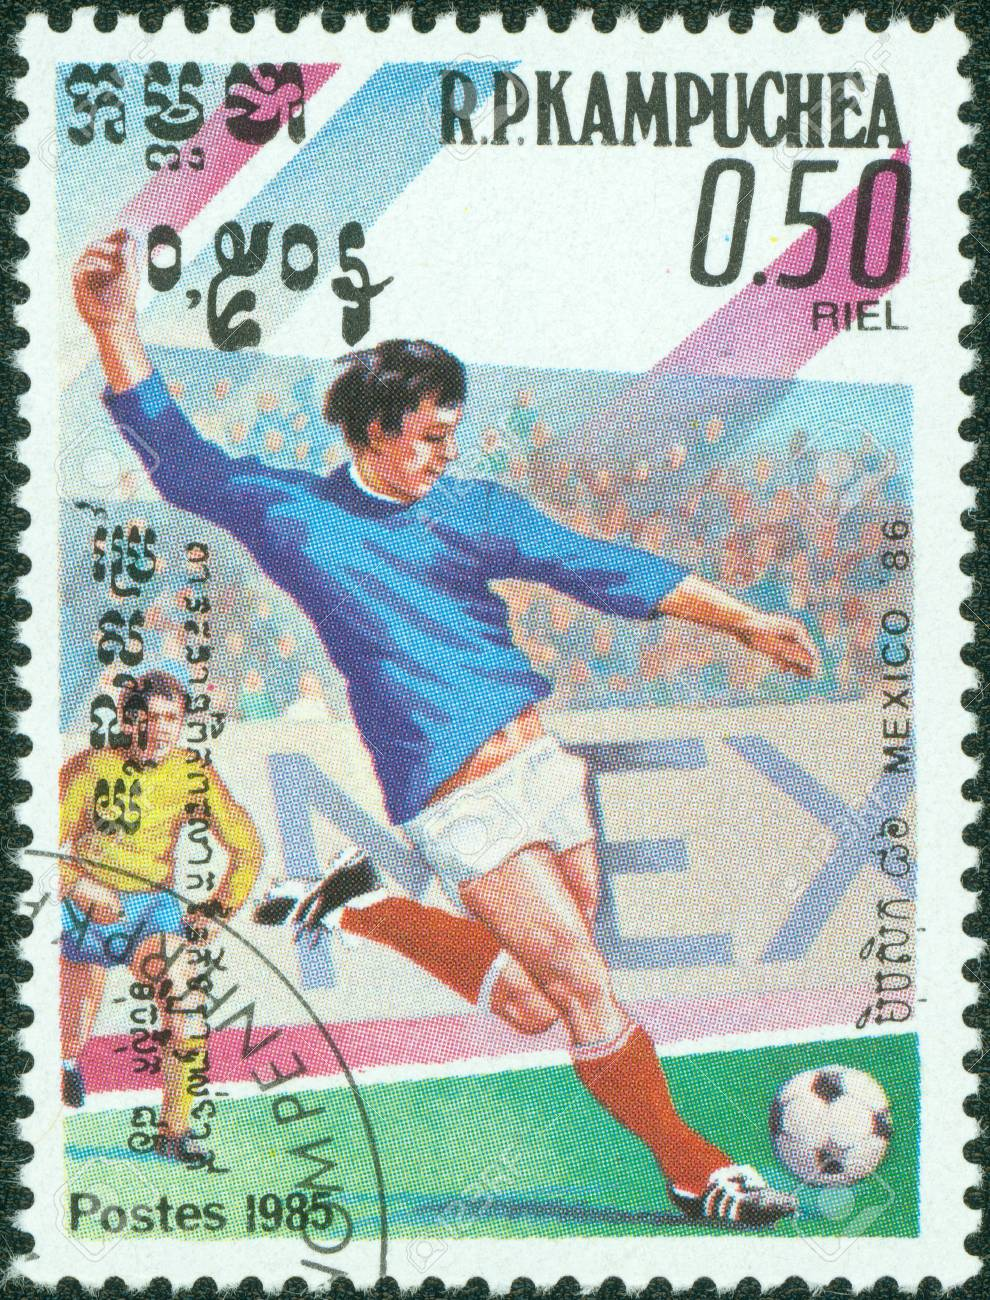 CAMBODIA - CIRCA 1985  stamp printed by Cambodia, shows World Cup Soccer Championships, circa 1985  Stock Photo - 14762949